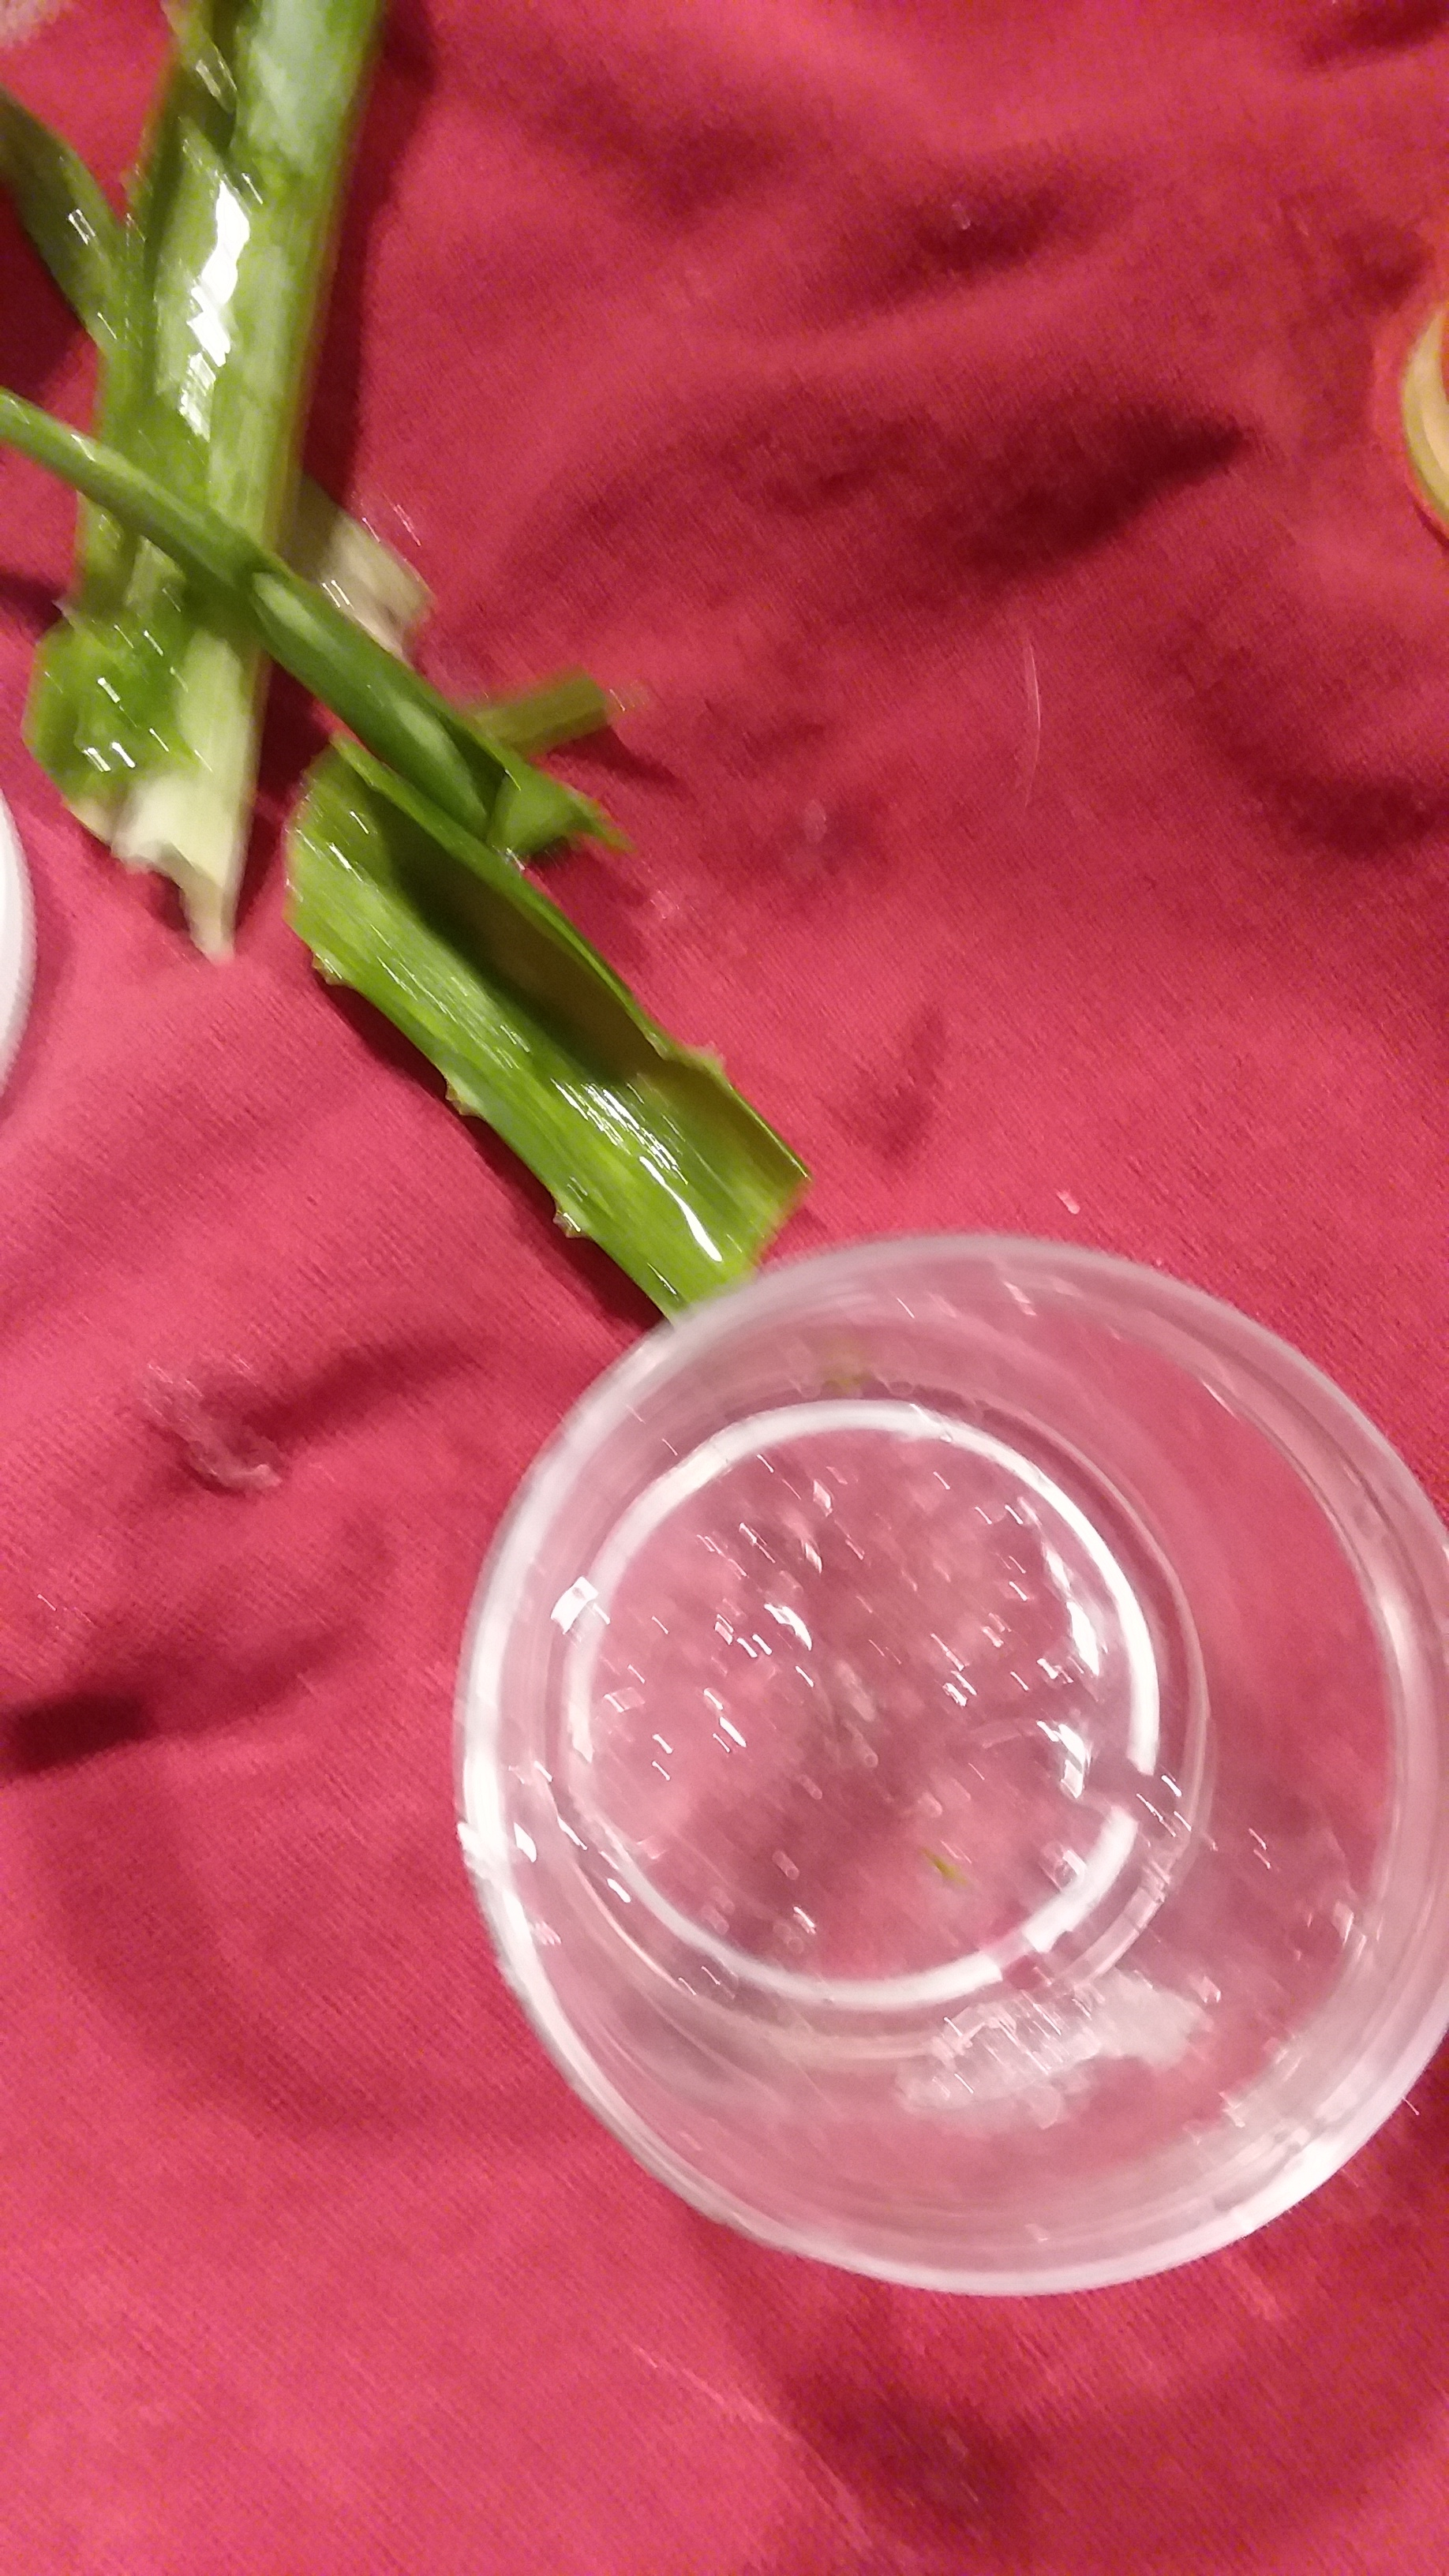 I eviscerated the aloe stalk and put the clear gel in a container. The aloe is clear and quite jello-ish